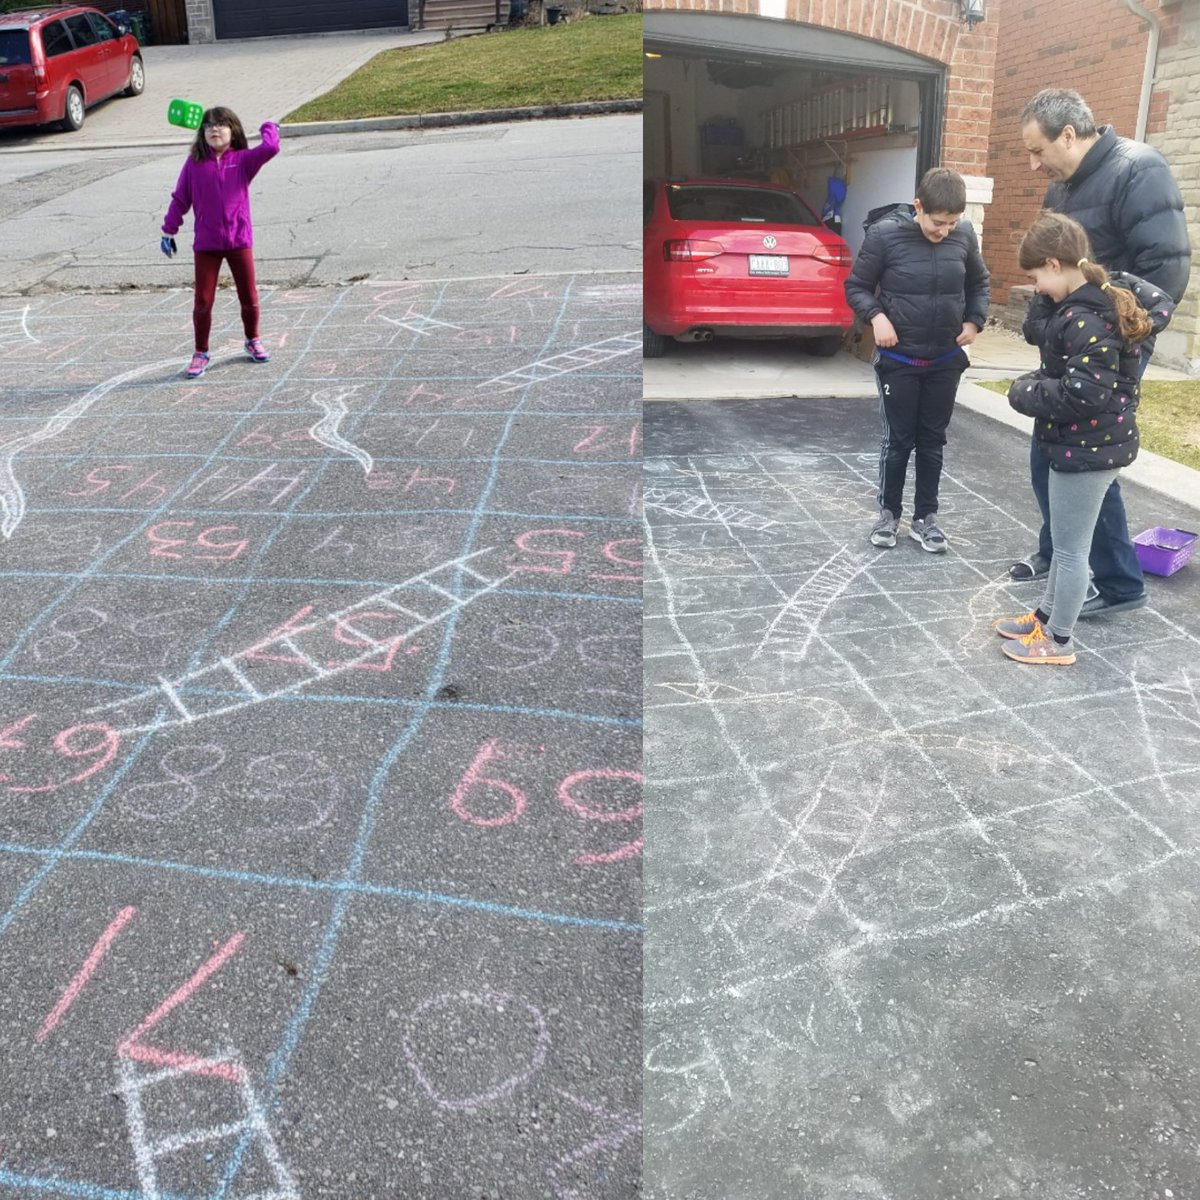 Ms Novello On Twitter When Your Student S Family And Your Family Test Out The Same Idea On The Same Day Sidewalk Chalk Snakes And Ladders Stedwardtcdsb Pstachiwtcdsb Ffmfit Https T Co Zi1lkxav57